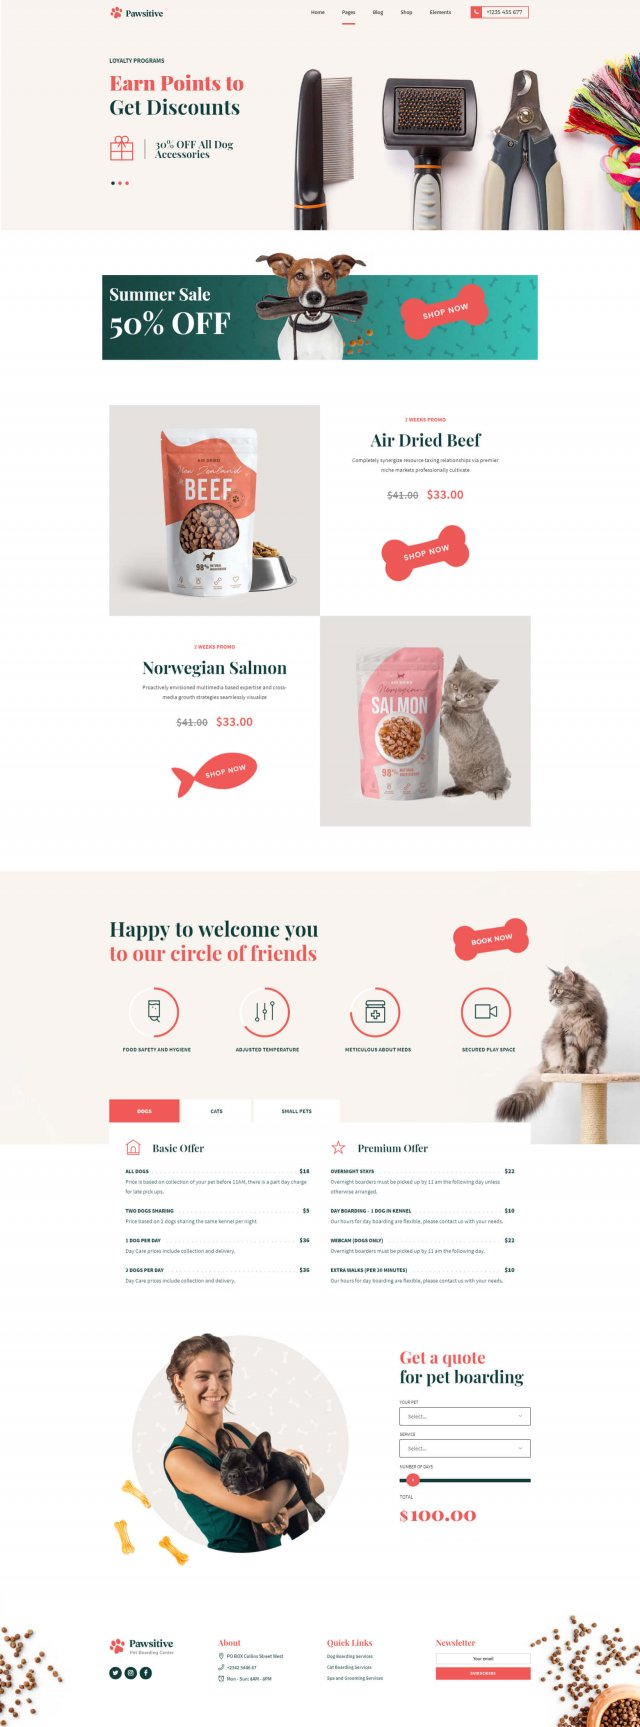 http://pawsitive.bold-themes.com/wp-content/uploads/2019/09/Bella-Prices-640x1727.jpg